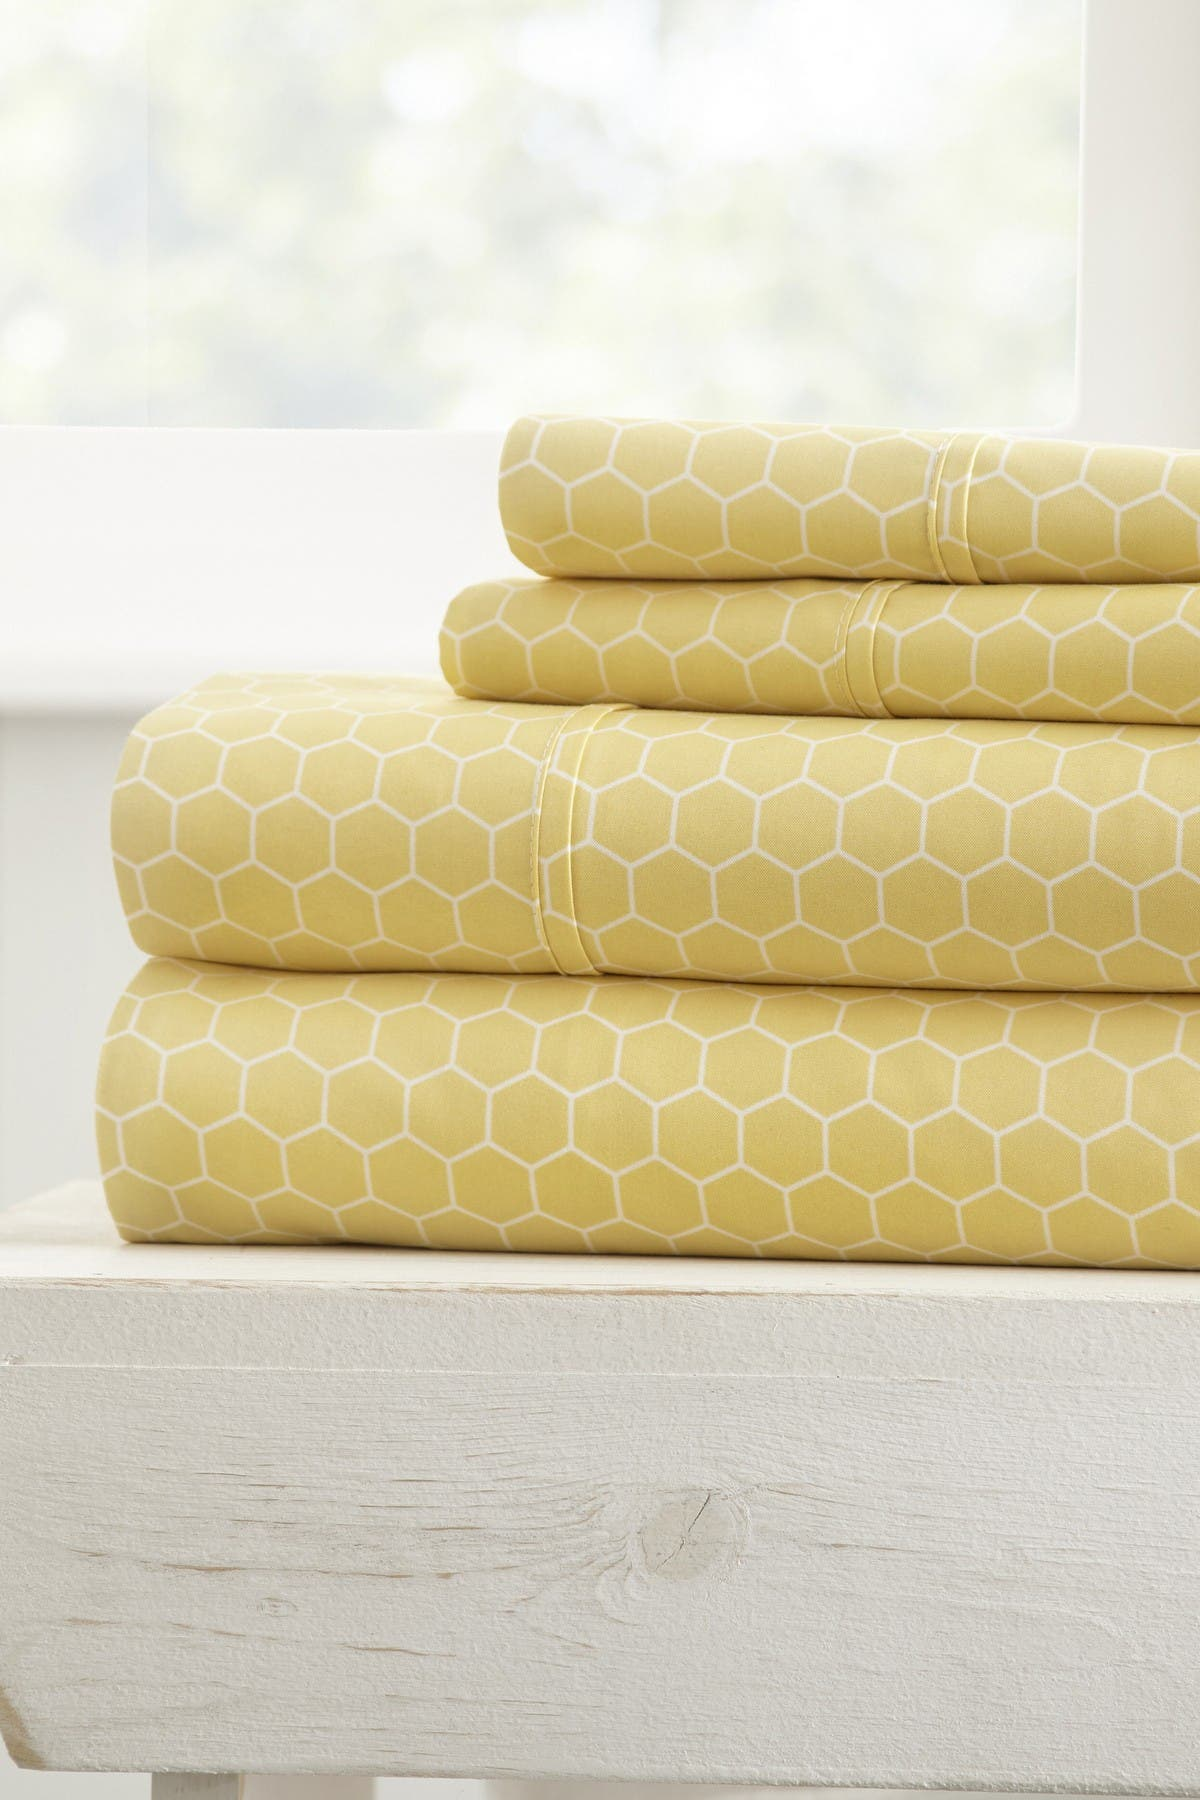 Image of IENJOY HOME Home Spun Ultra Soft Honeycomb Pattern 4-Piece California King Bed Sheet Set - Yellow